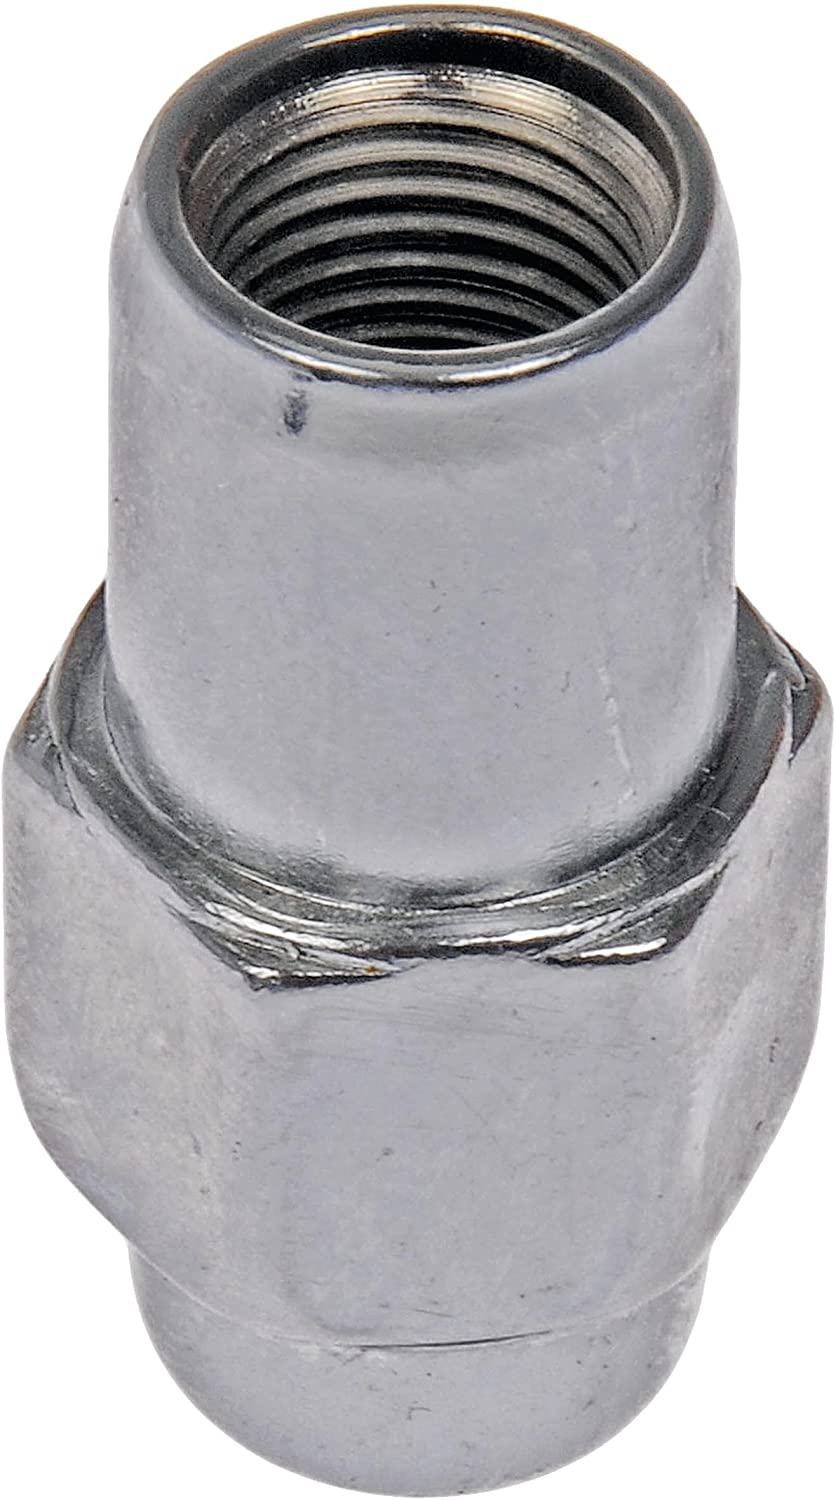 Dorman 711-248 Pack of 16 Wheel Nuts with 4 Lock Nuts and Key